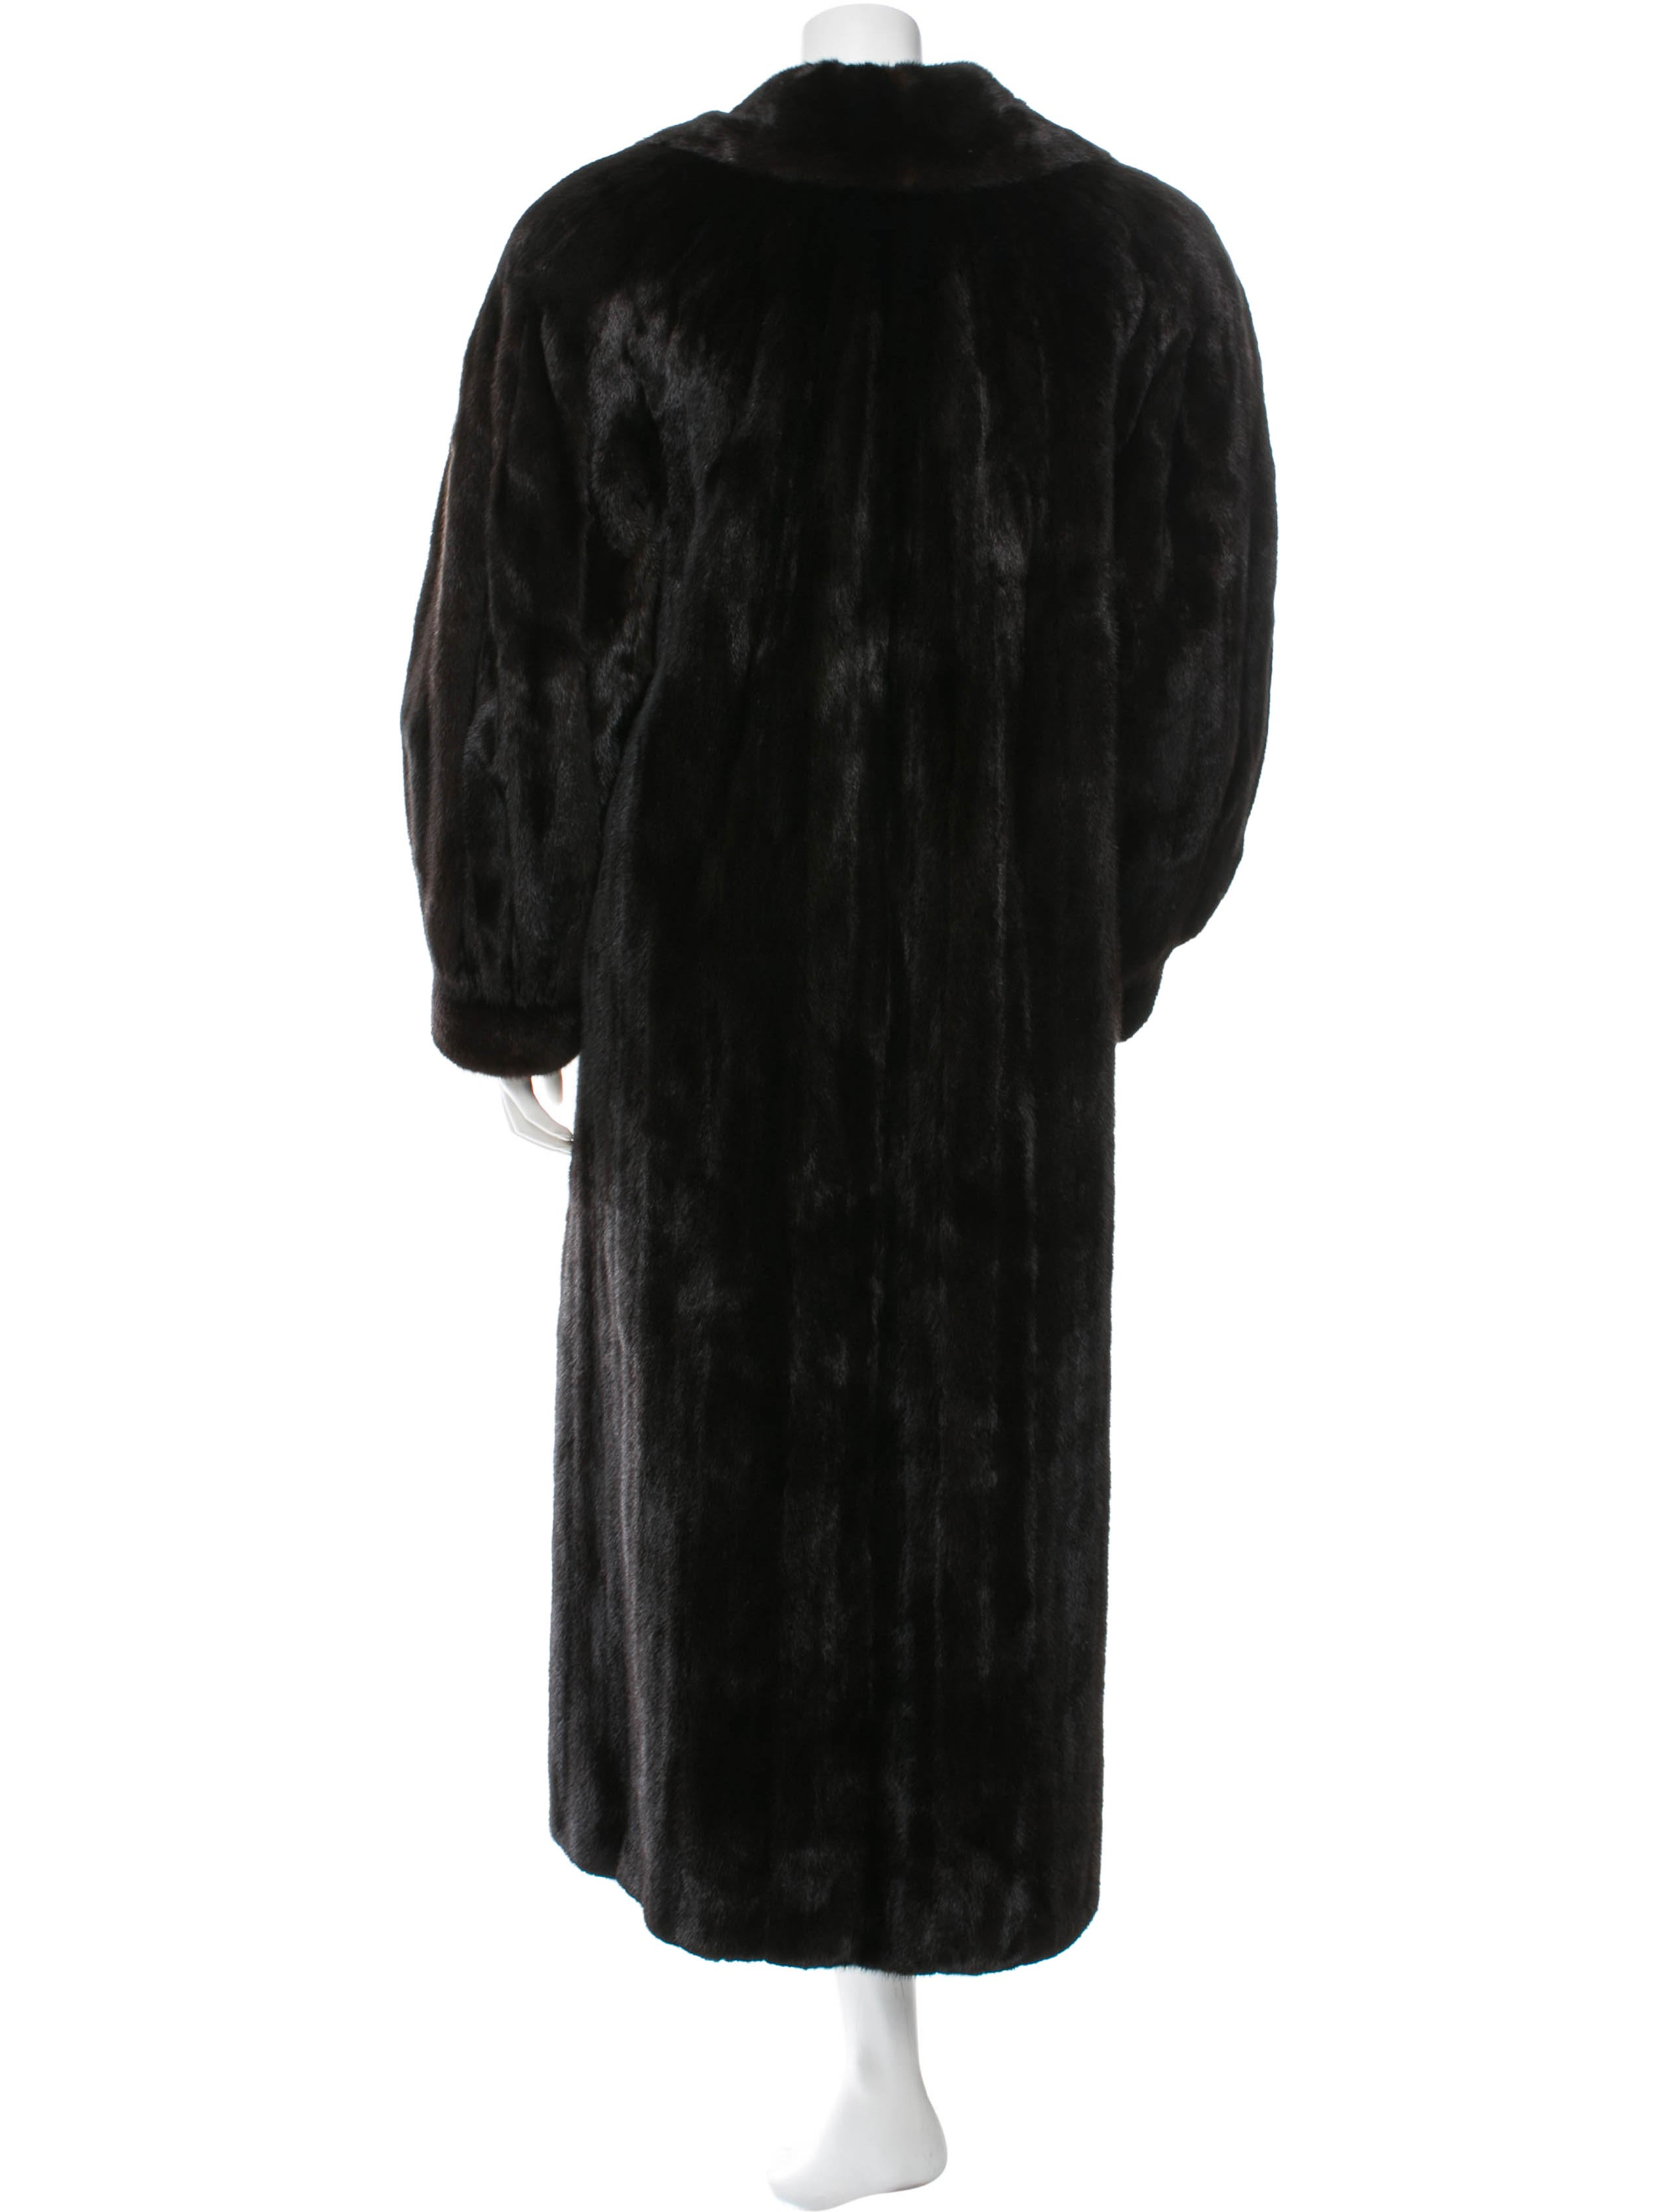 galanos neiman marcus mink coat clothing gal20002. Black Bedroom Furniture Sets. Home Design Ideas